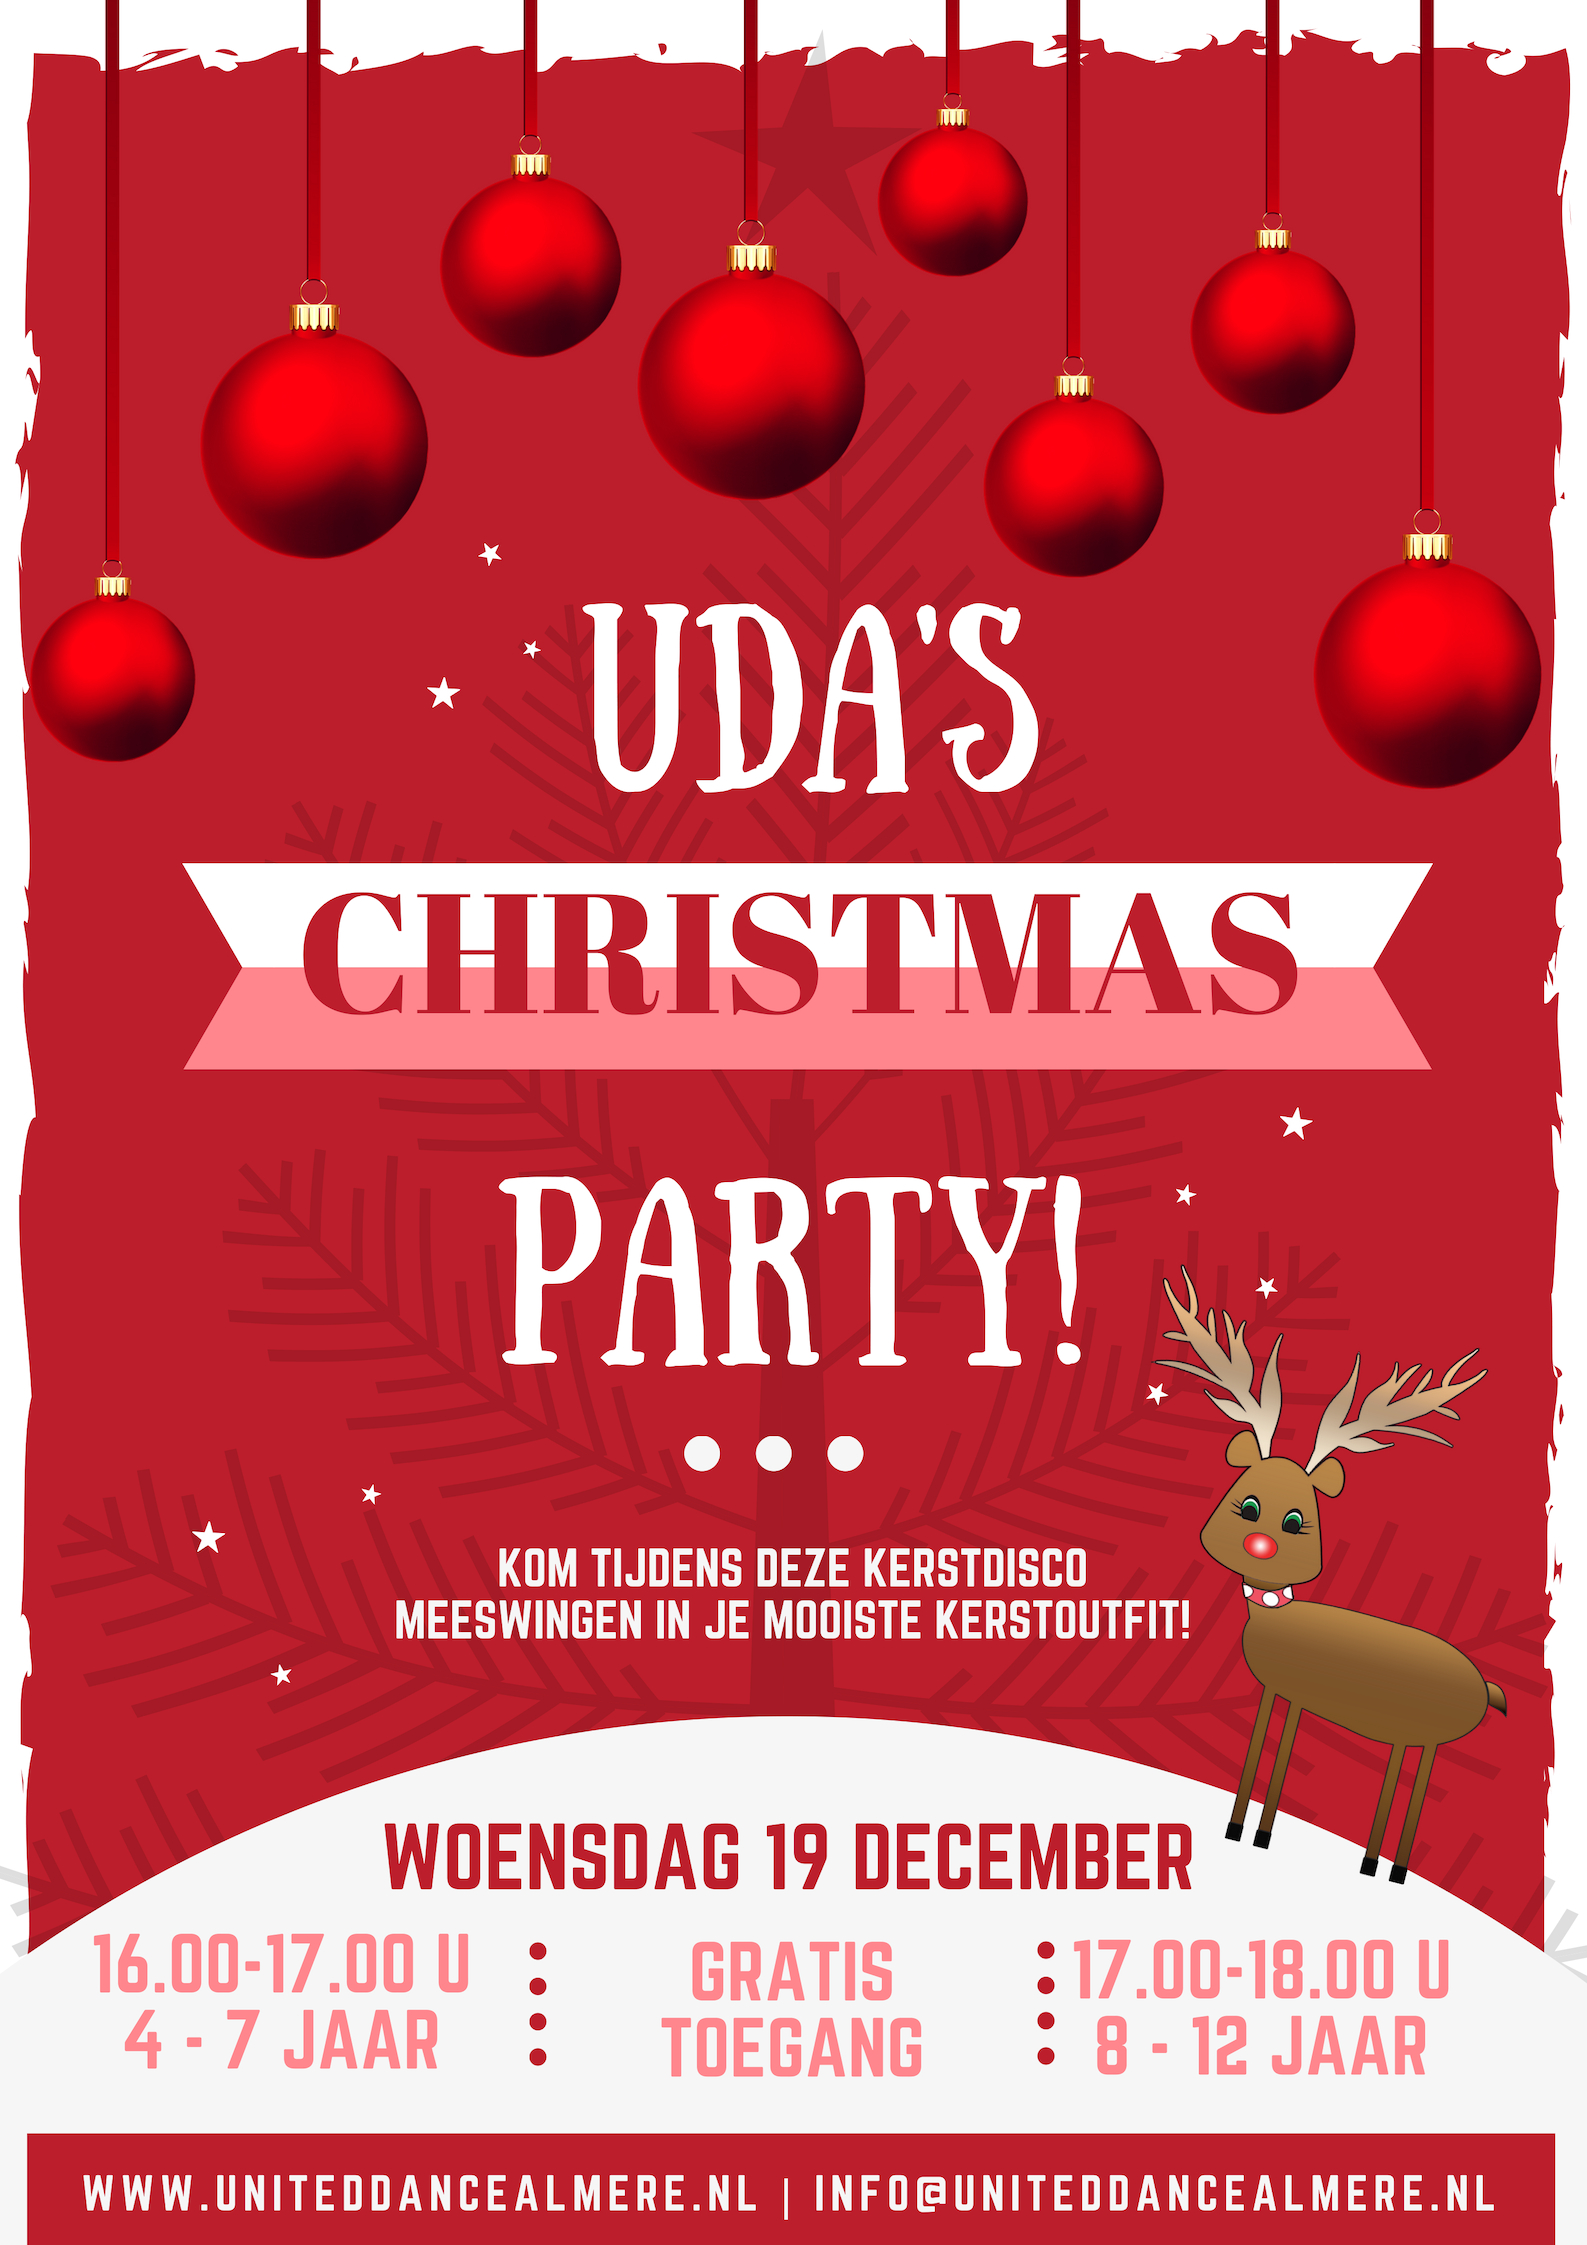 UDA's Christmas Party!